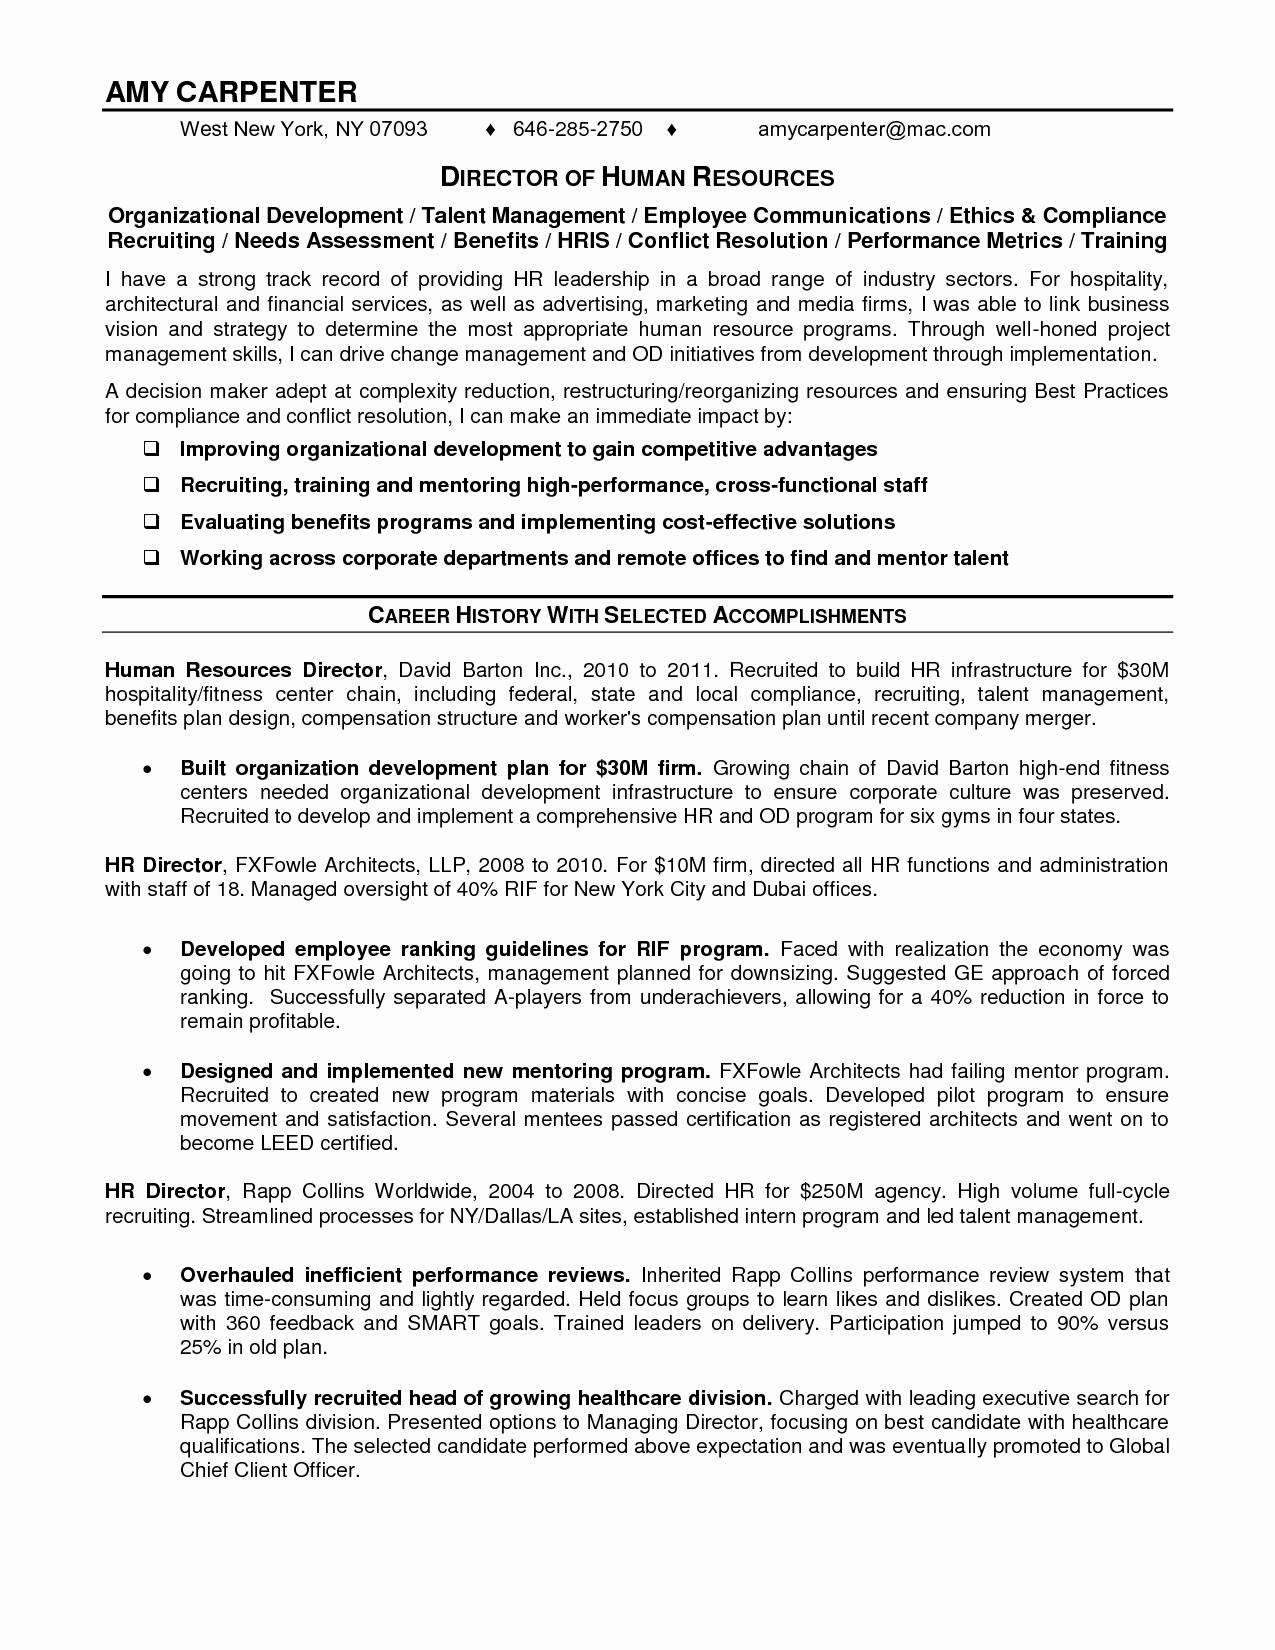 letter of intent real estate template example-mercial Real Estate Lease Letter Intent Template Top Best Mercial Lease Contract Template Best Awesome Printable Fire 7-s